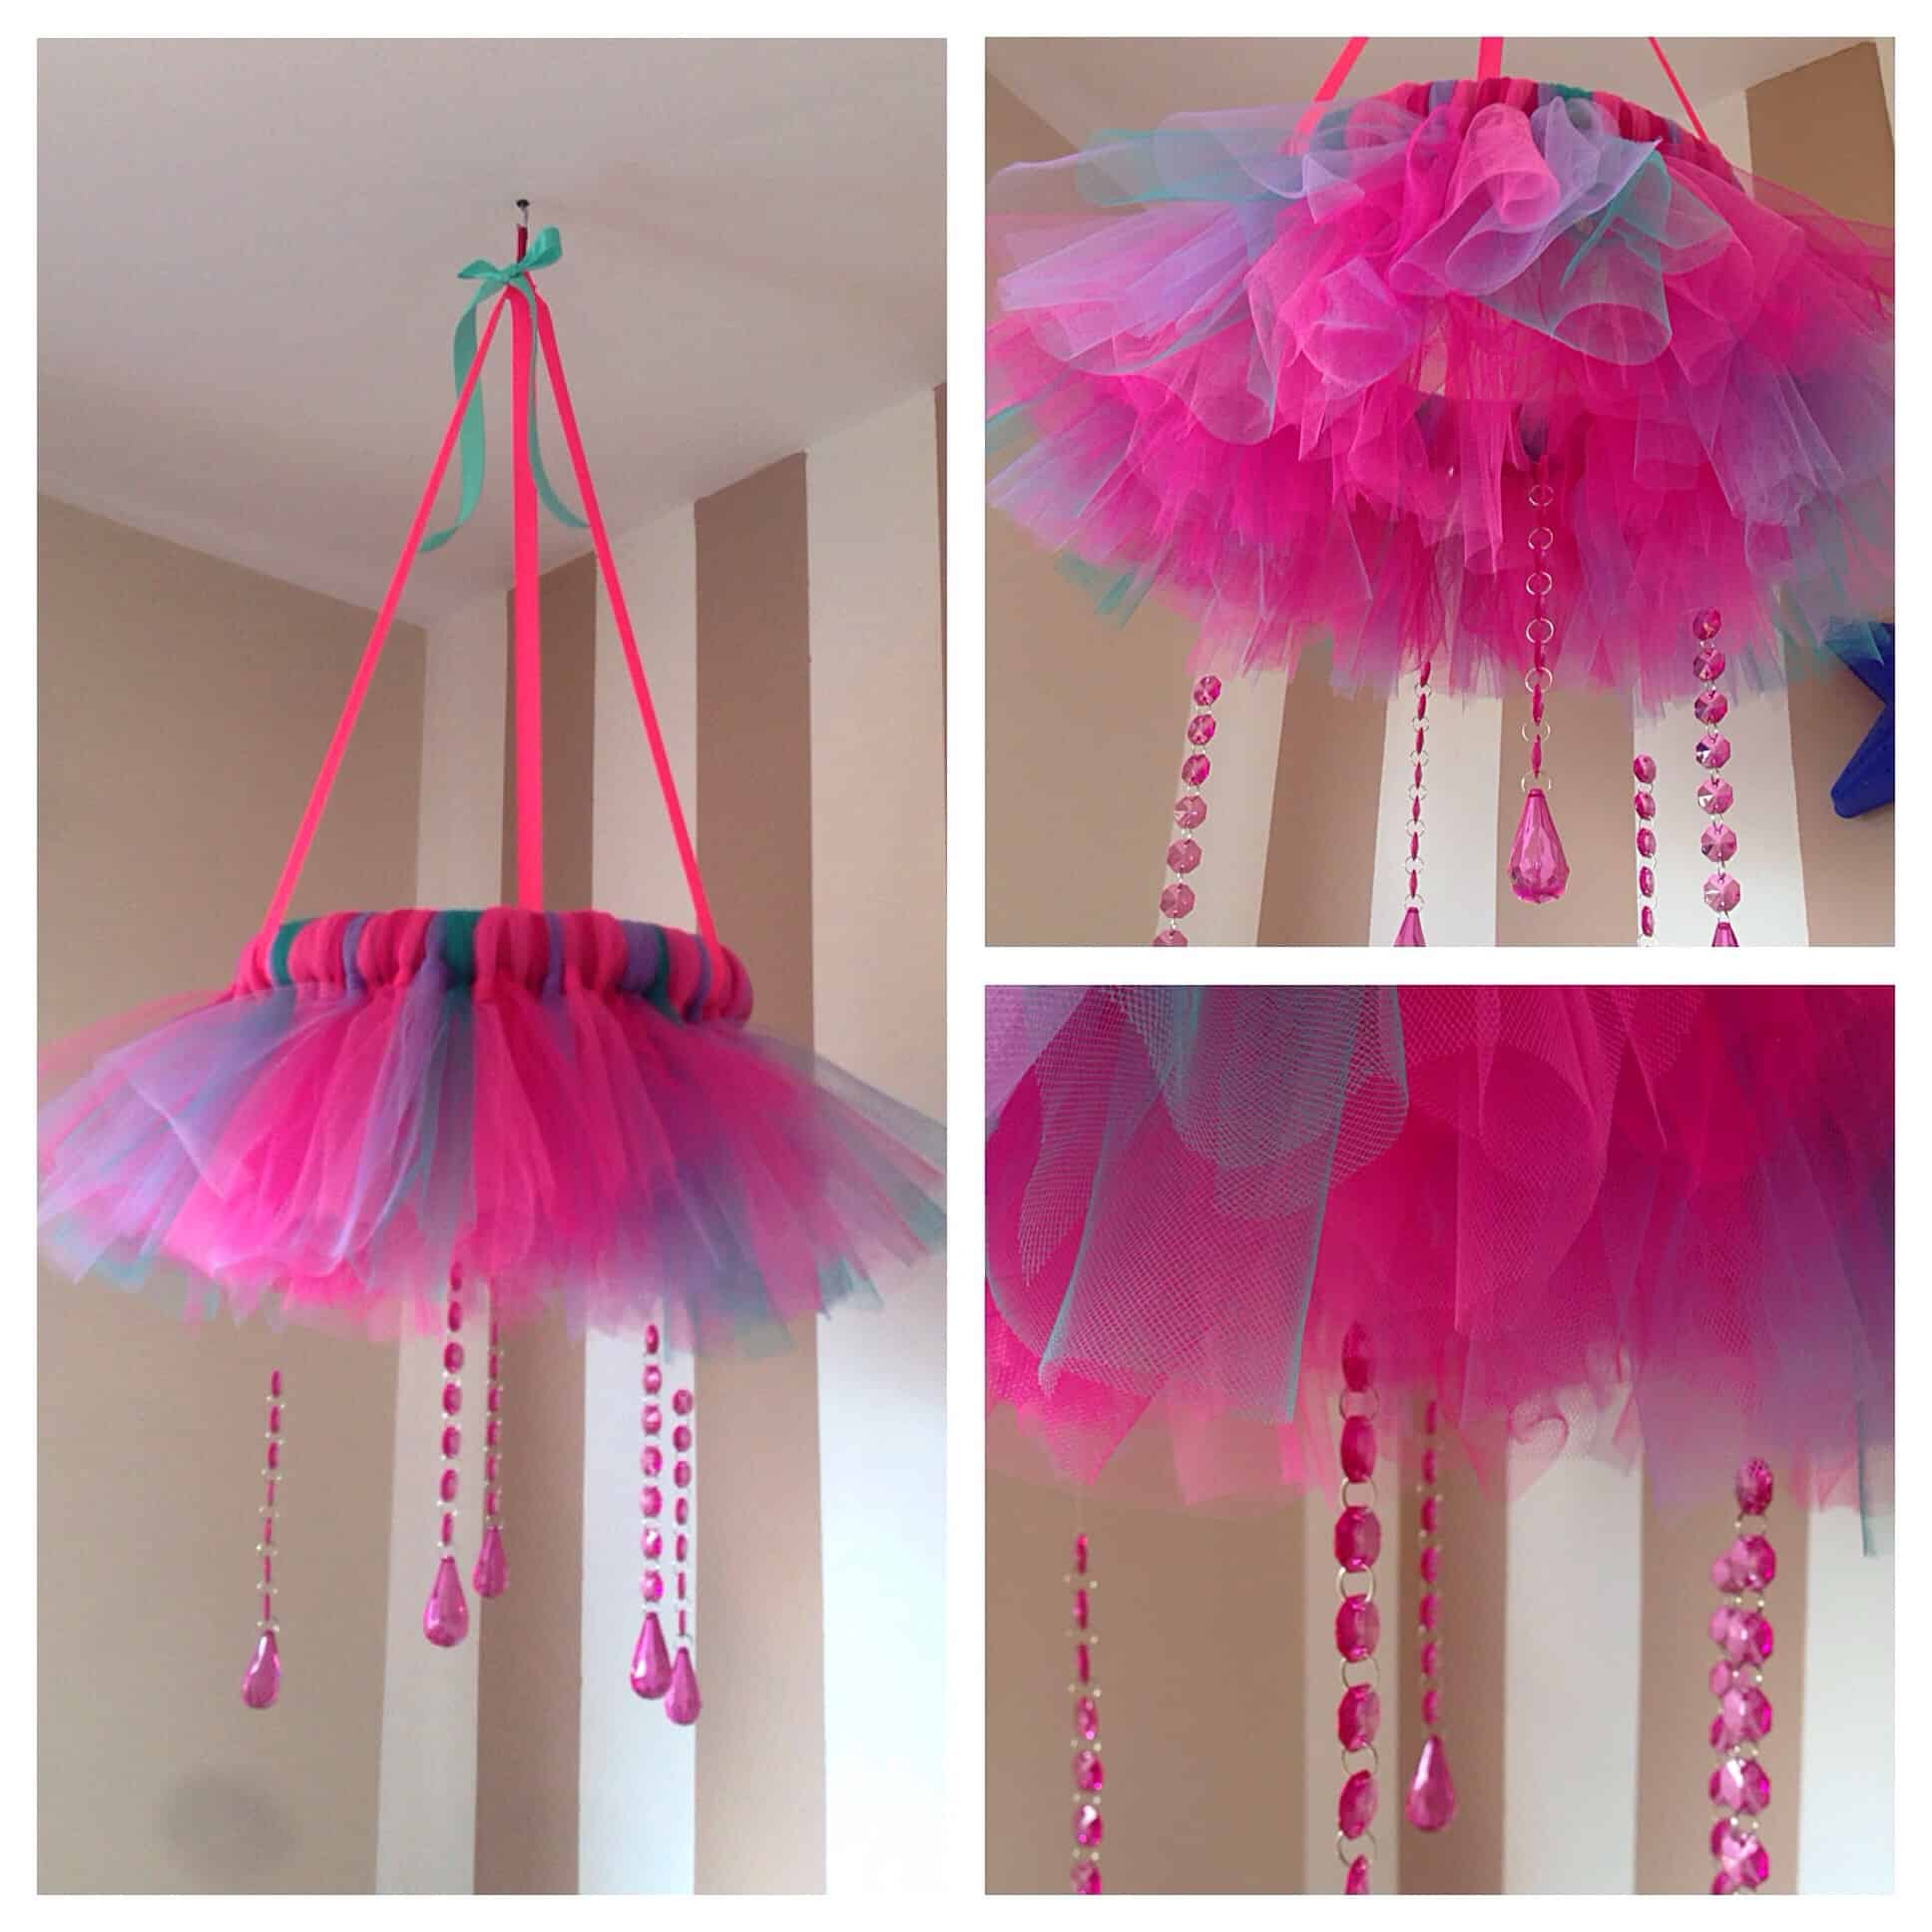 13 Tutu And Bead Hanging Mobile